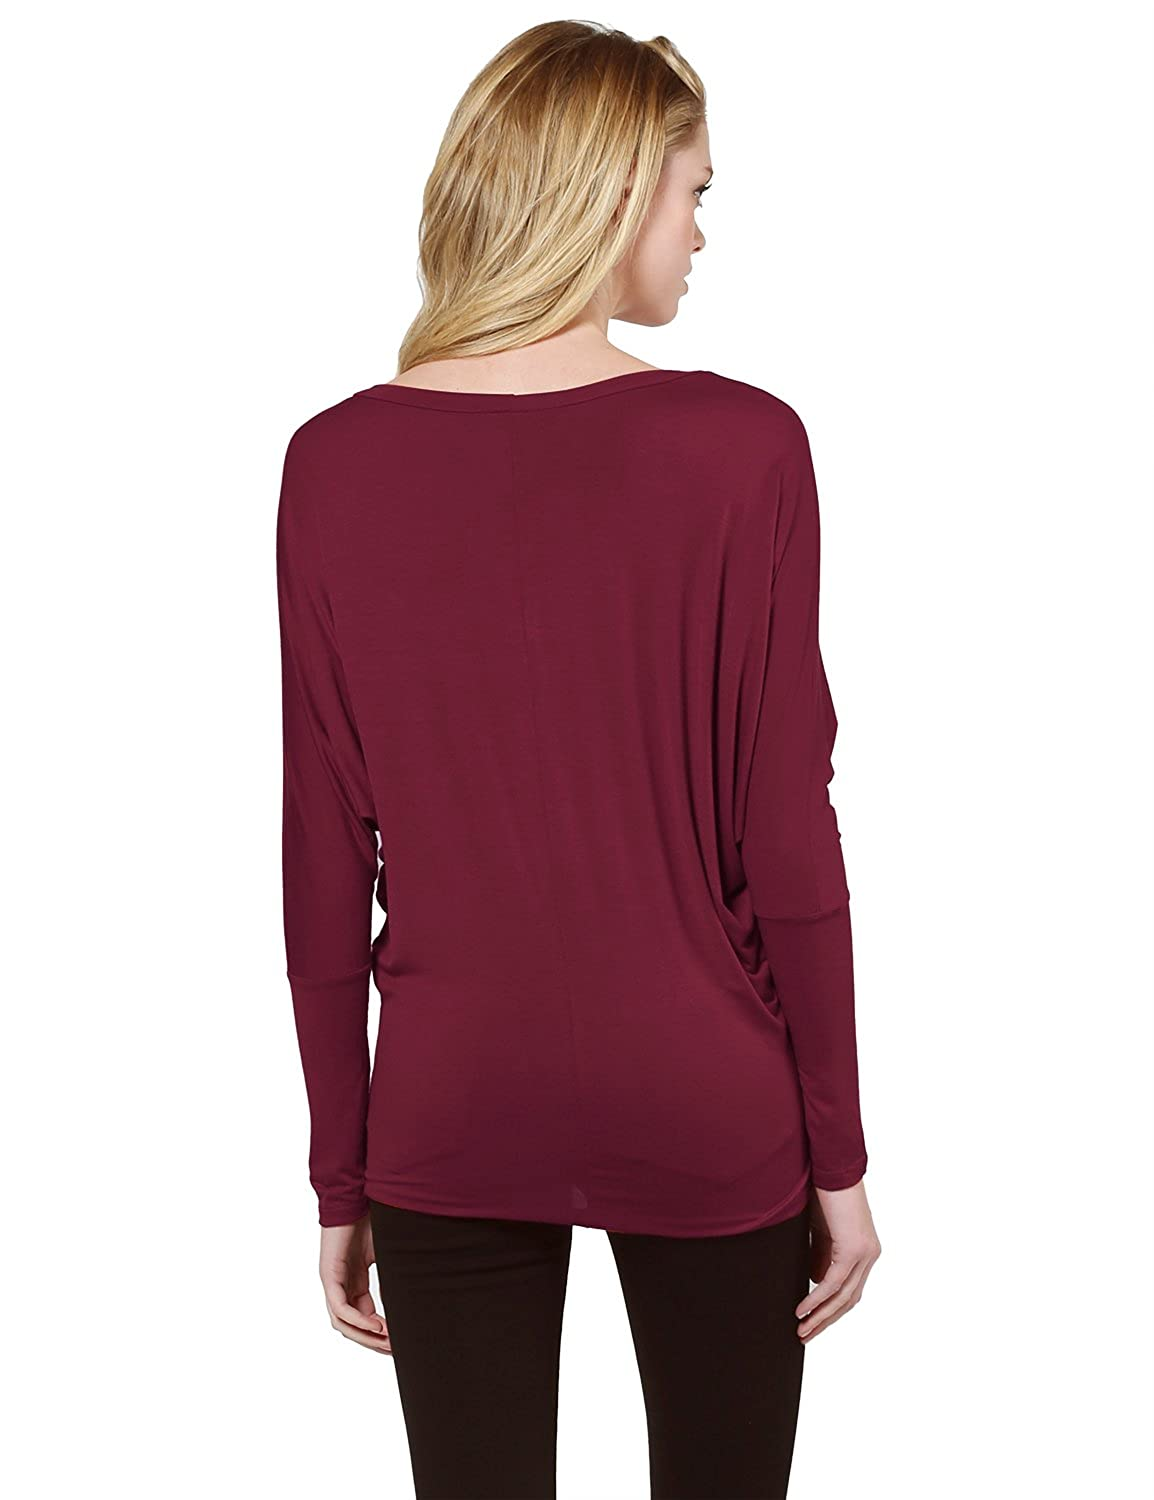 d648a3708997 Awesome21 Women's Casual Solid Boat Neck Long Dolman Sleeve Top - Made in  USA at Amazon Women's Clothing store: